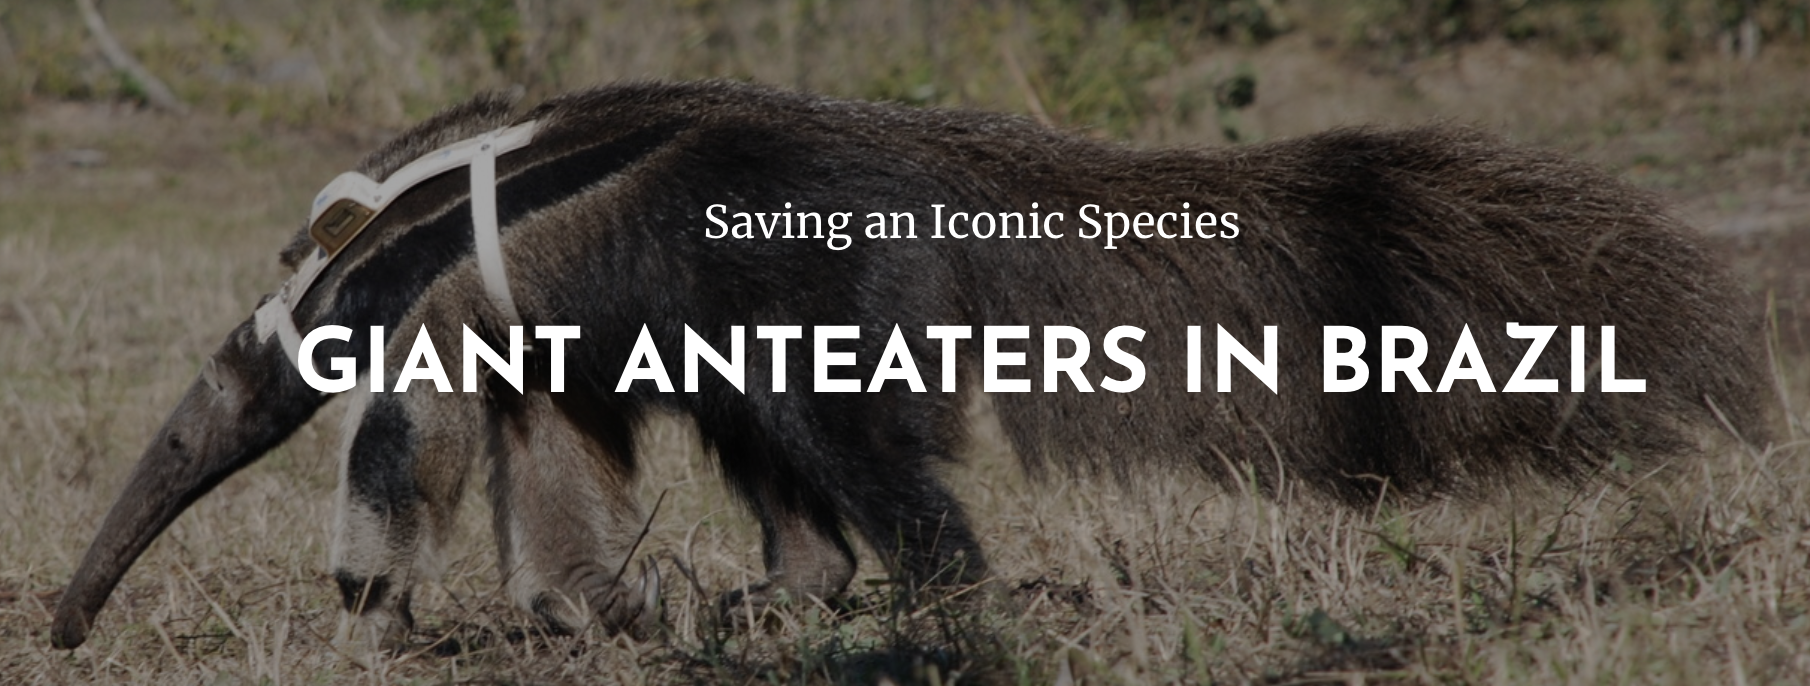 Member Anniversaries: Giant Anteaters Project (Brazil)